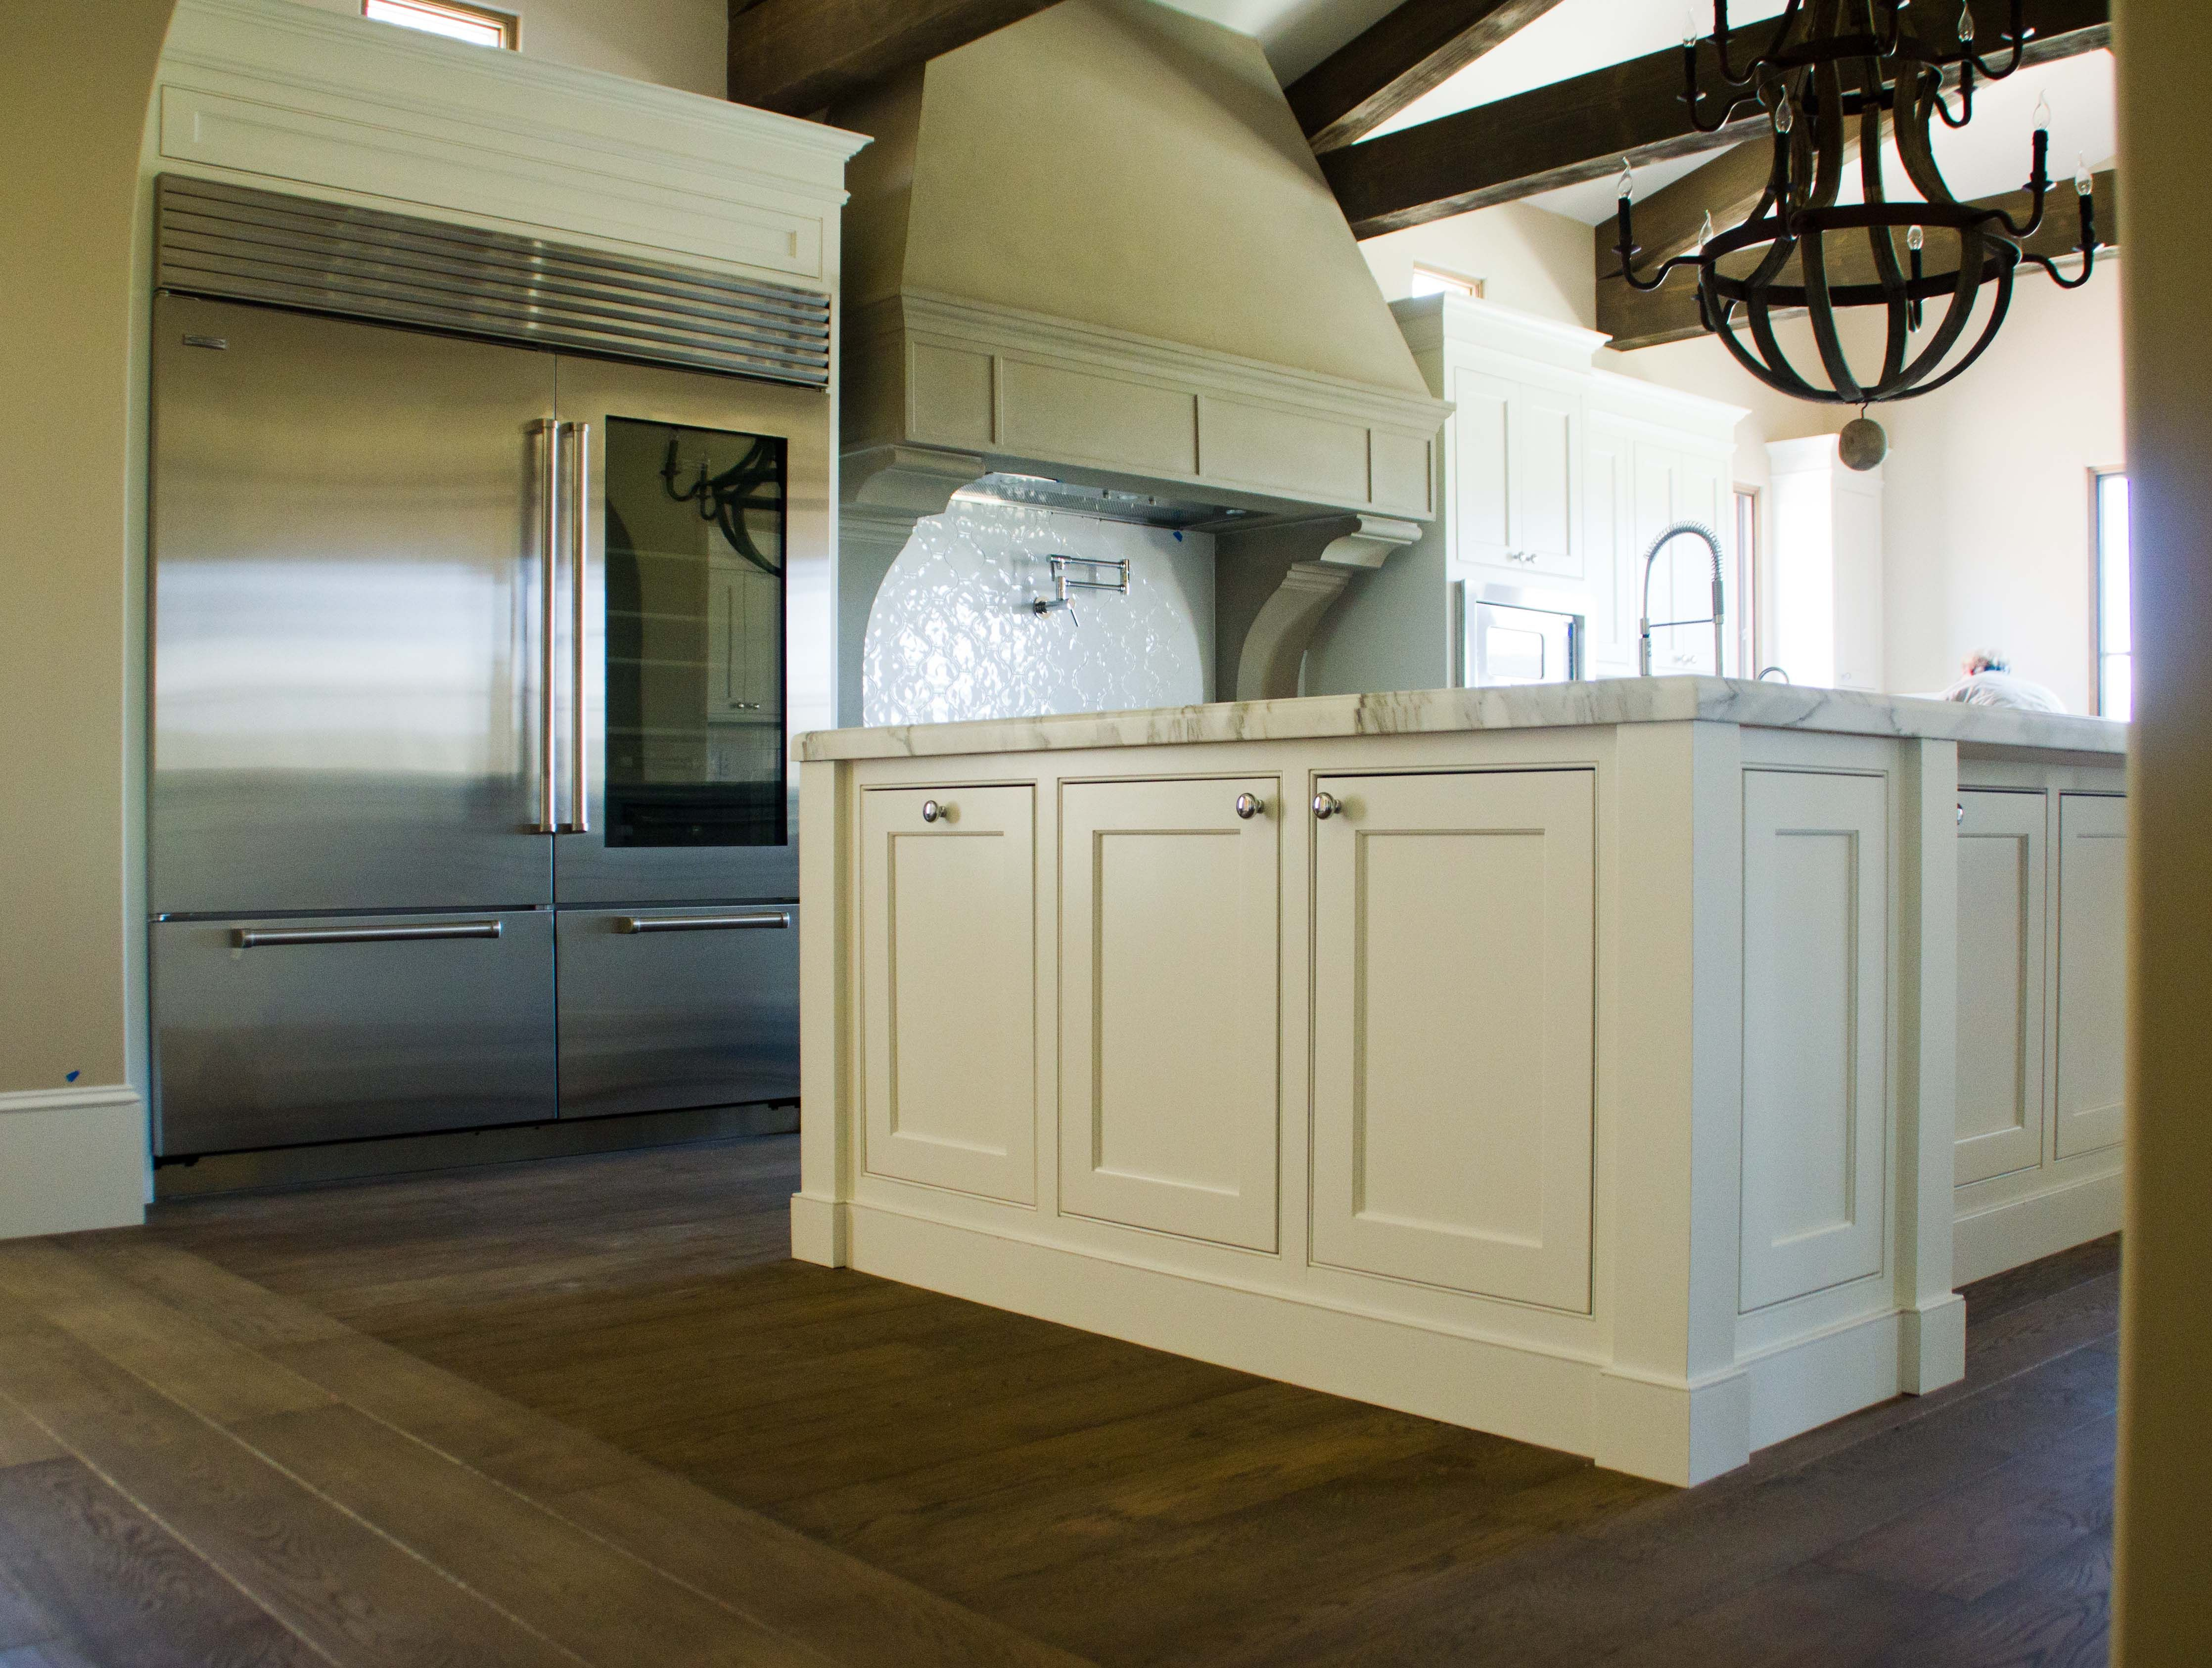 Best Kitchen Gallery: Flush Fit Island Kitchen Pinterest Custom Cabi S And Kitchens of Flushed Kitchen Cabinets on rachelxblog.com